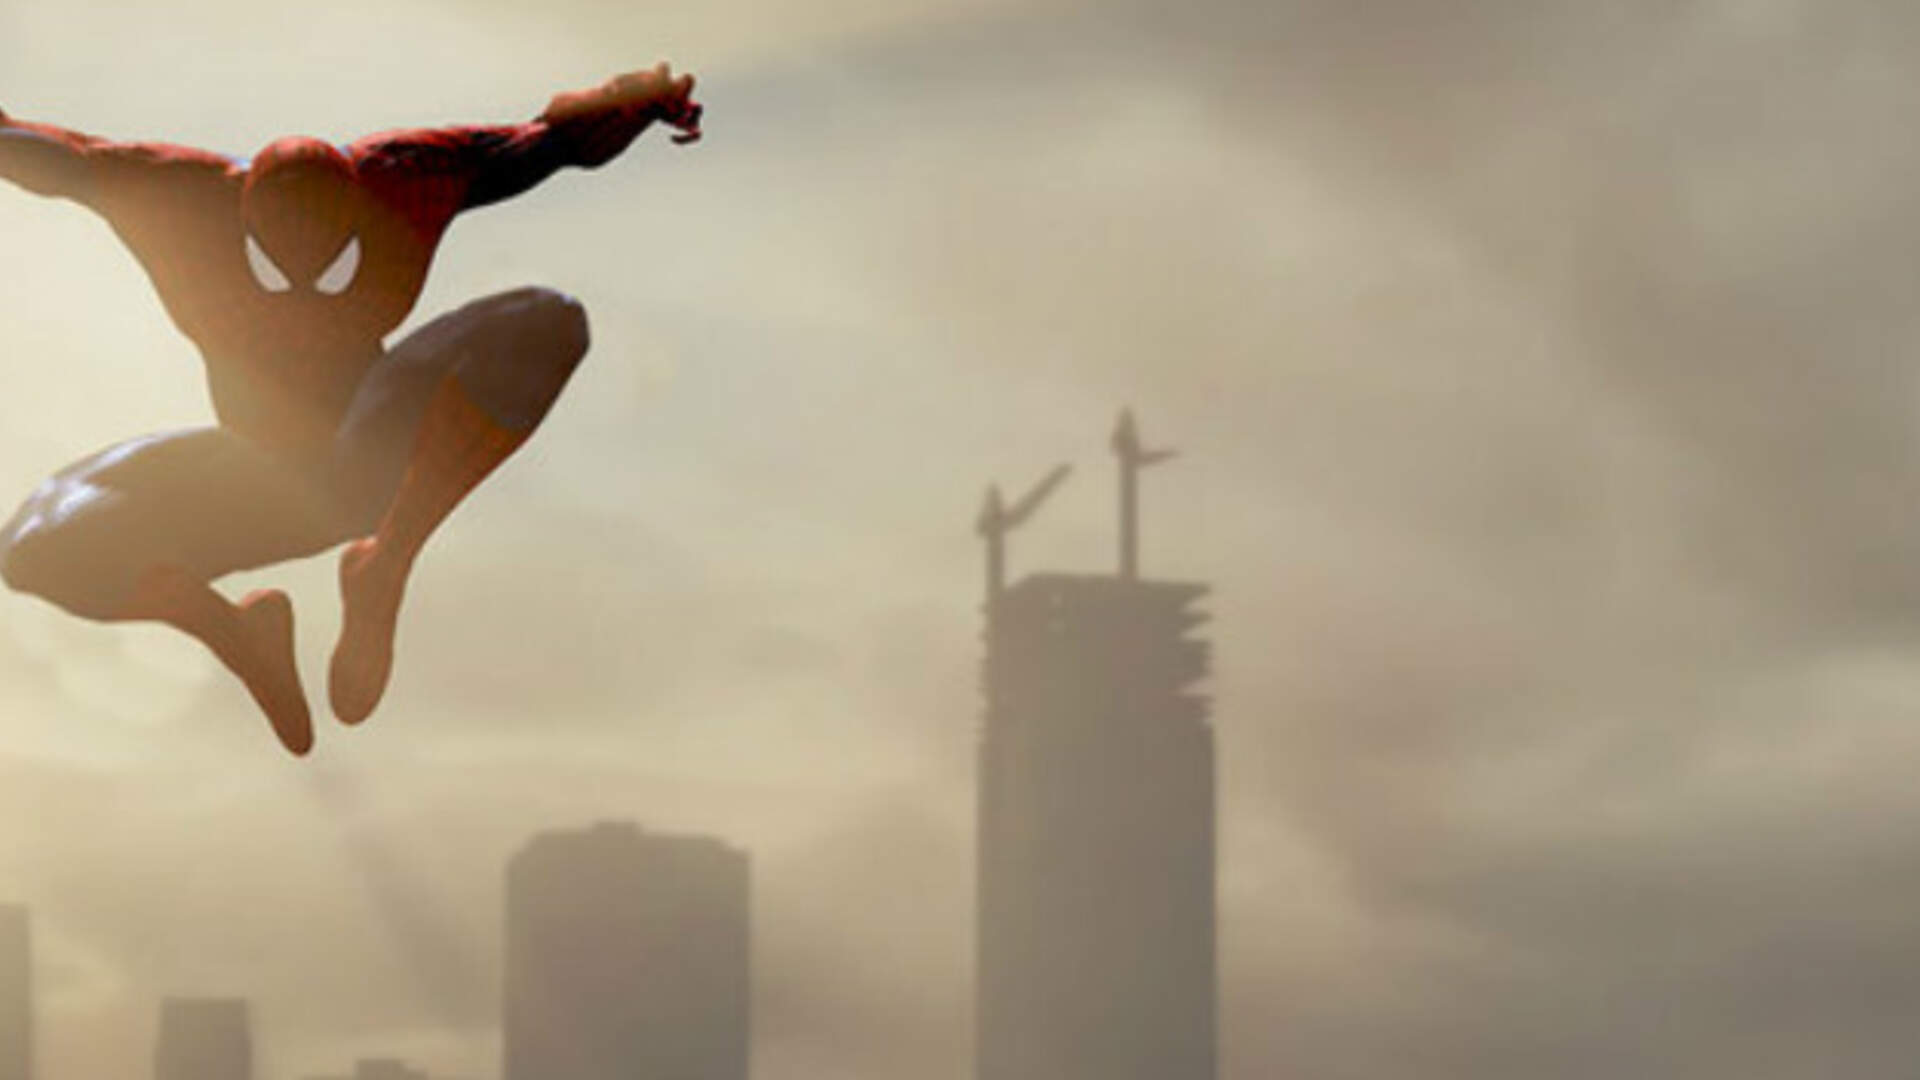 The Amazing Spider-Man 2 PS4 Review: Replace 'Amazing' With 'Average'